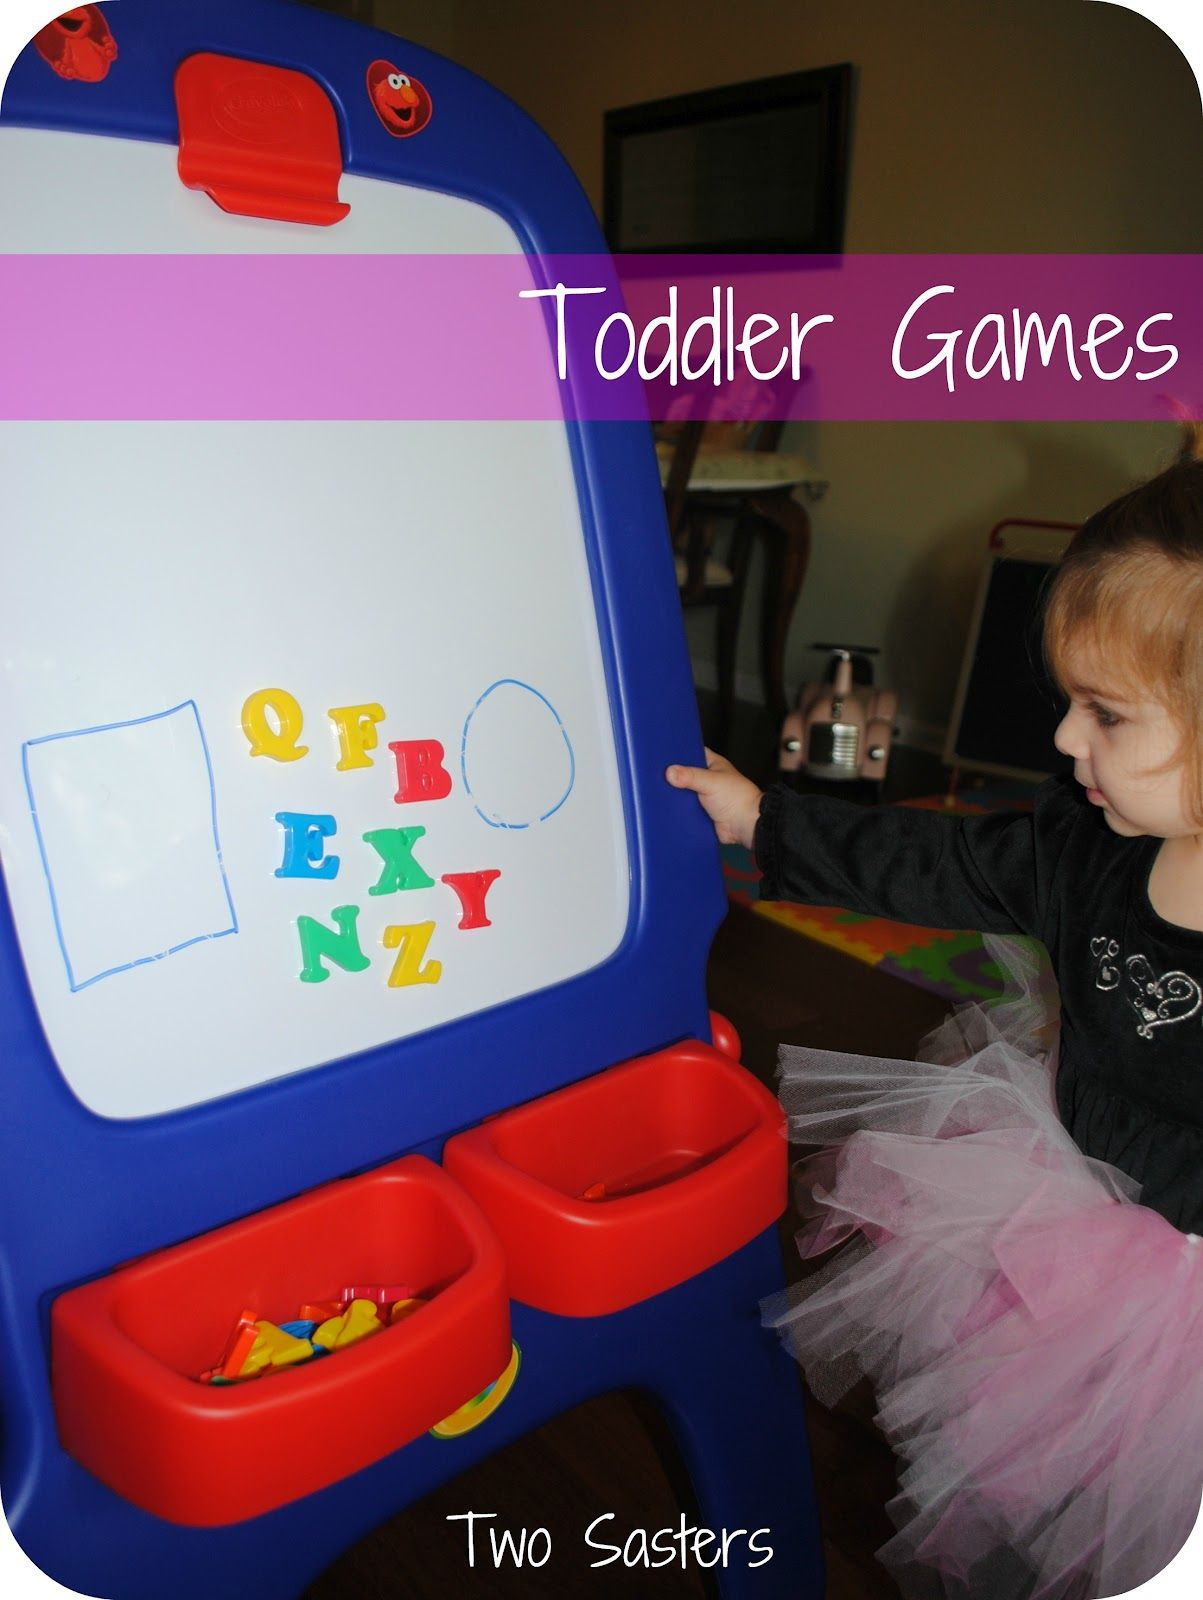 Toddler Games! Loving Hearts Child Care and Development